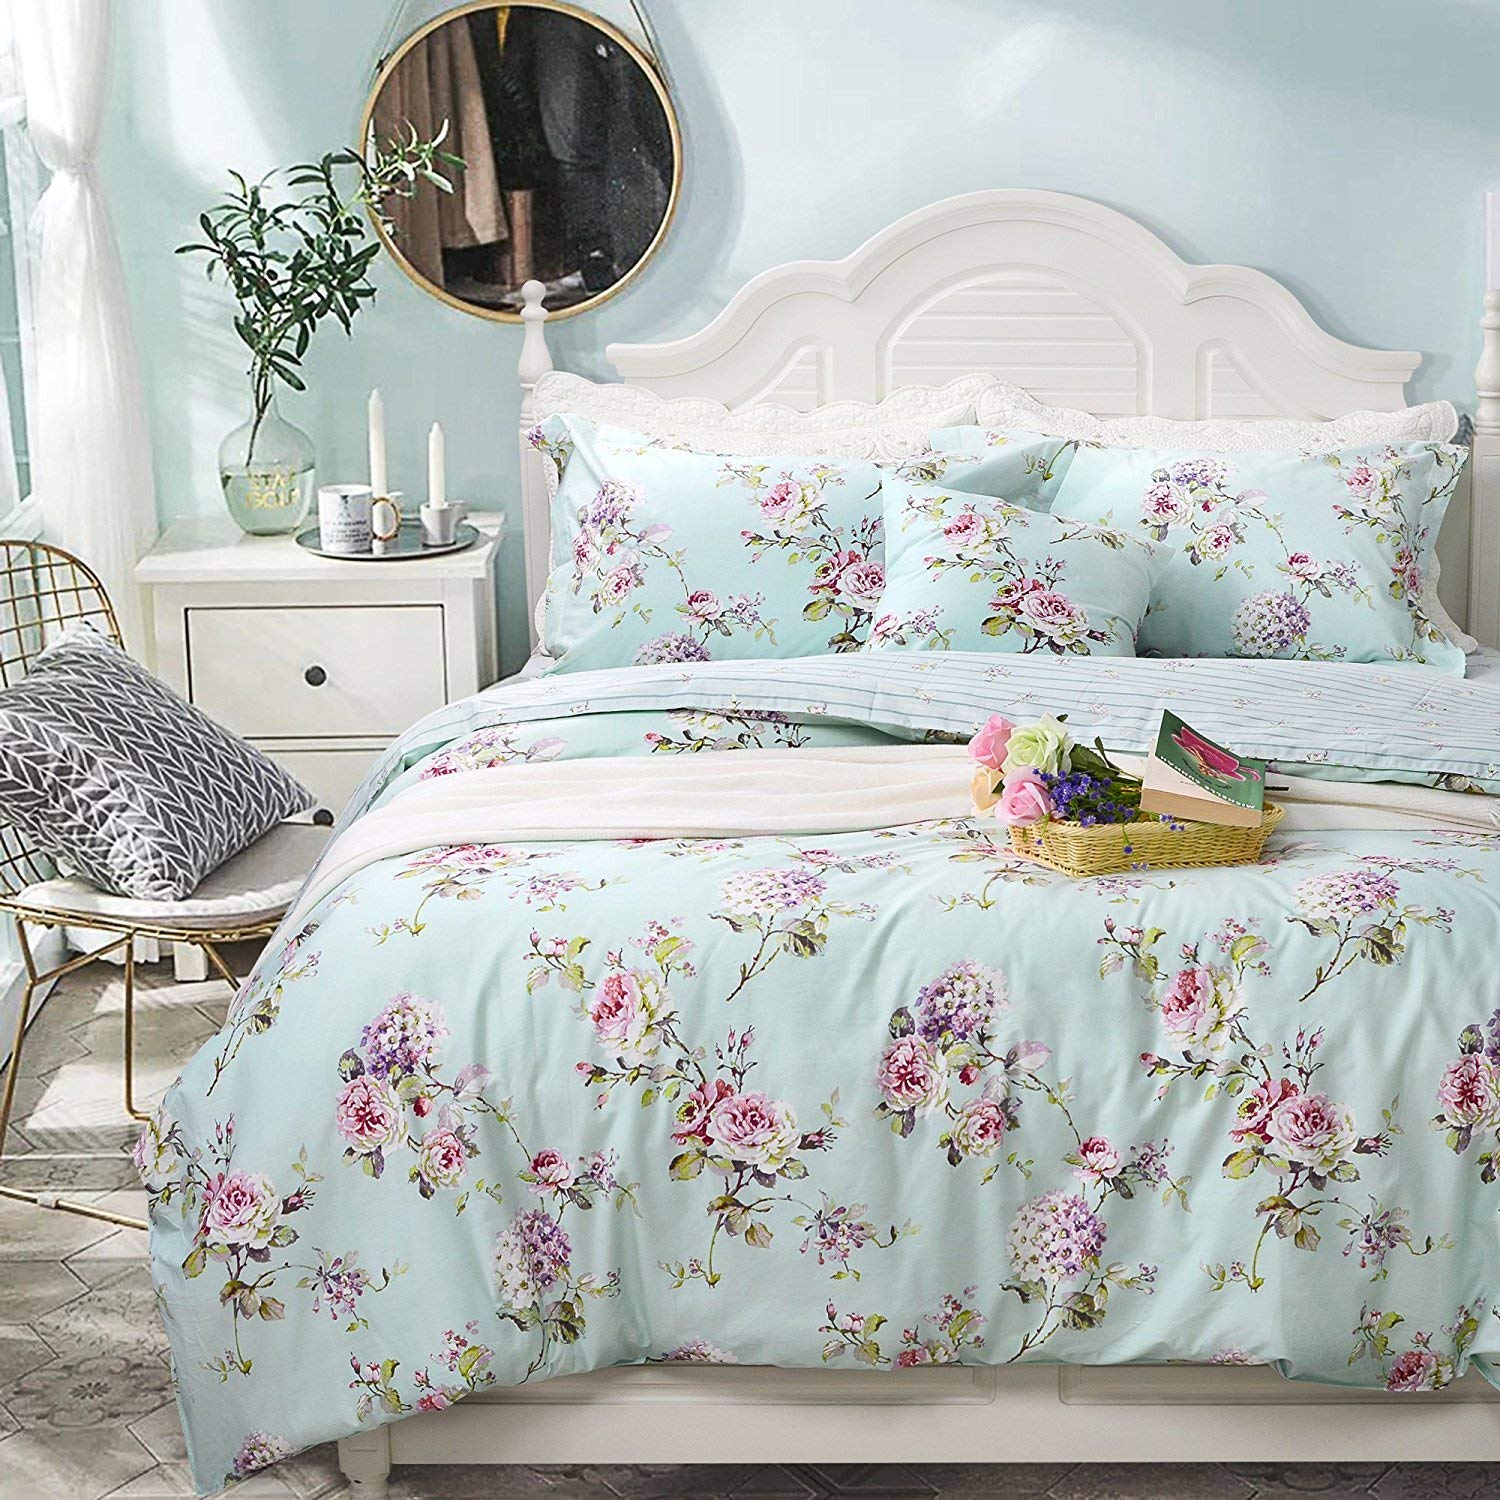 FADFAY Elegant Shabby Hydrangea Fashionable Floral Bedding Set Duvet Cover Sheet Set 7 Pieces 100% Soft Cotton Hypoallergenic,1 Duvet Cover 1 Fitted Sheet 1 Flat Sheet 4 Pillow sham,King Size 7-Pieces